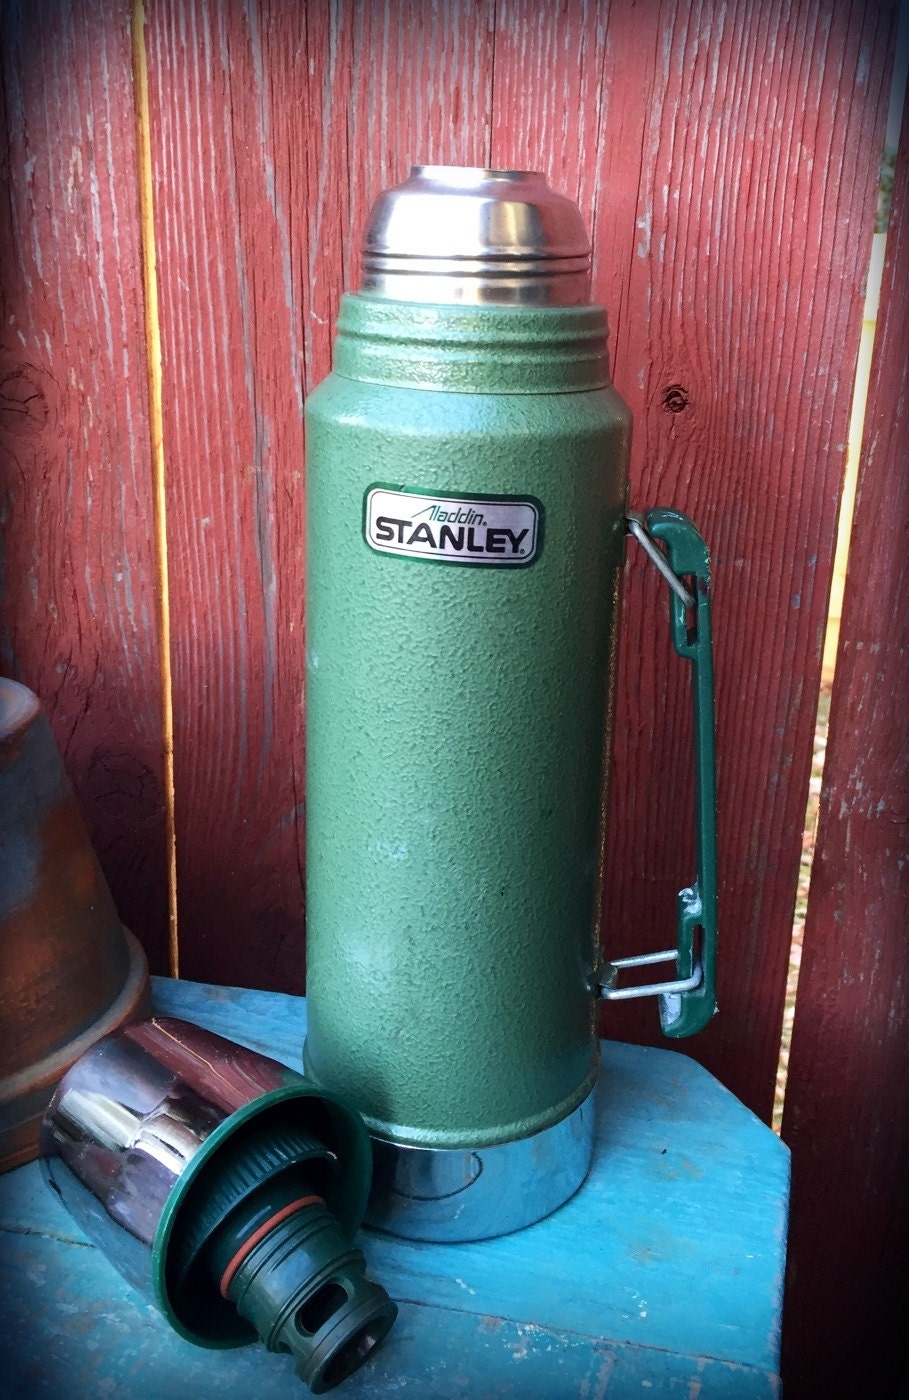 Stanley Thermos Rubber Gasket Related Keywords & Suggestions